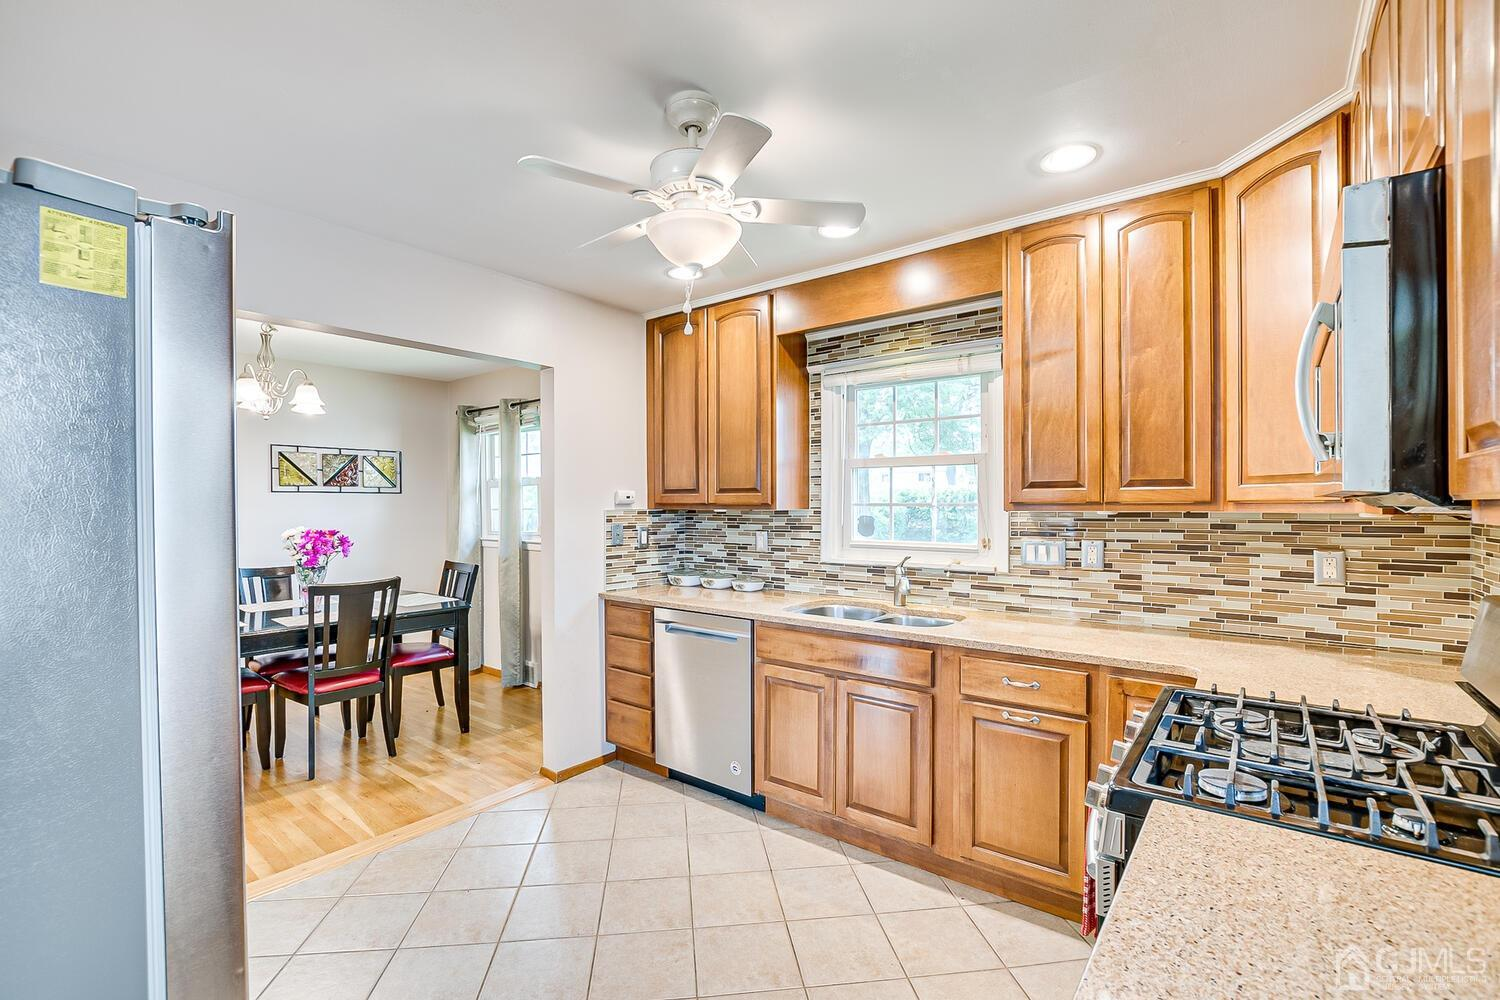 Open Floor Plan from Kitchen to Dining Room.